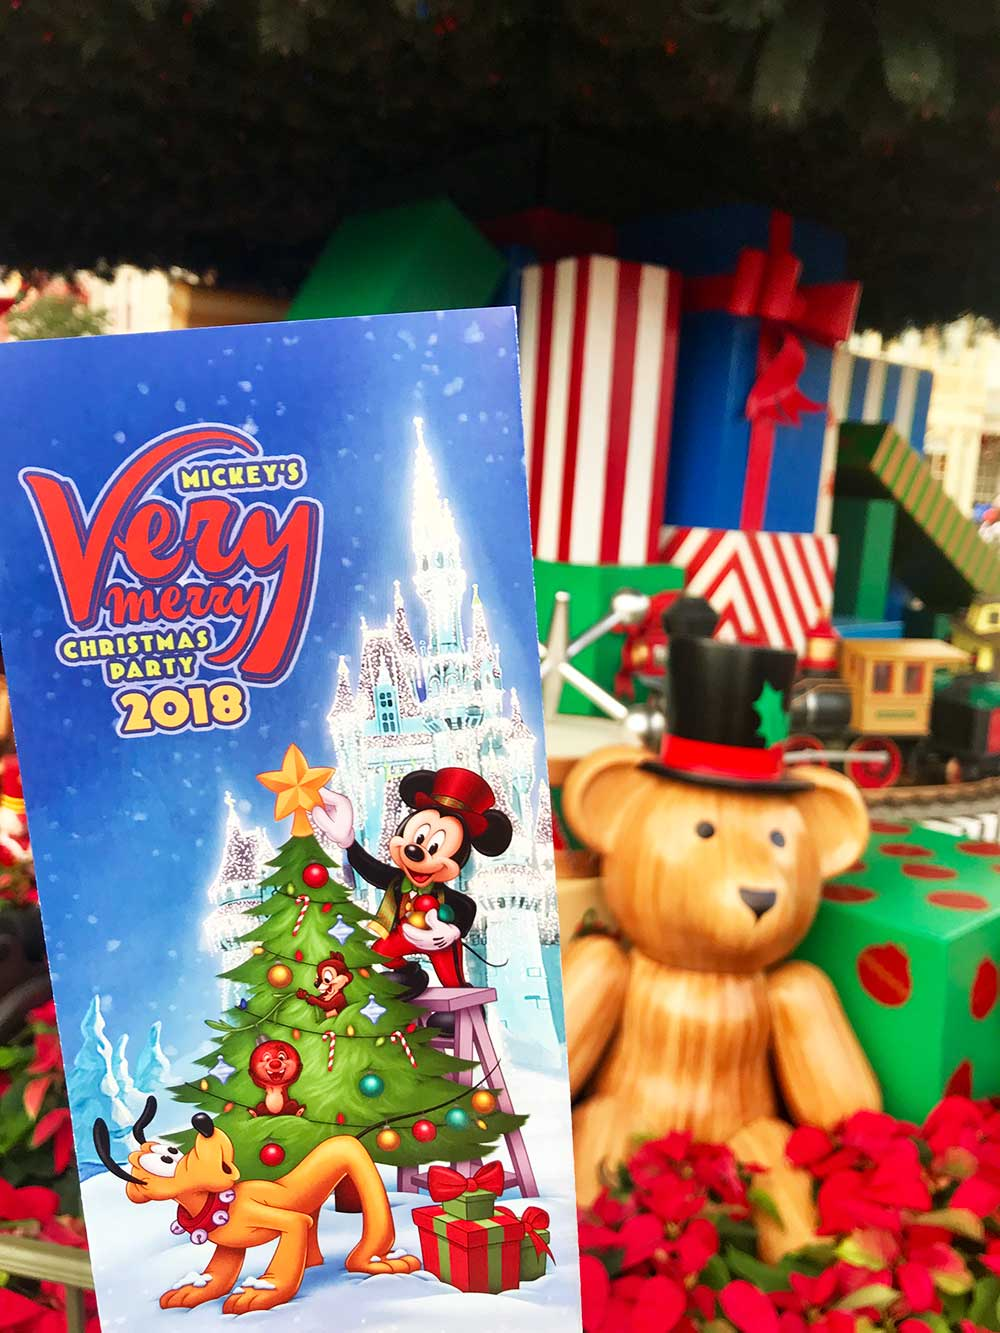 Mickey's Very Merry Christmas Party 2019 - Brochure